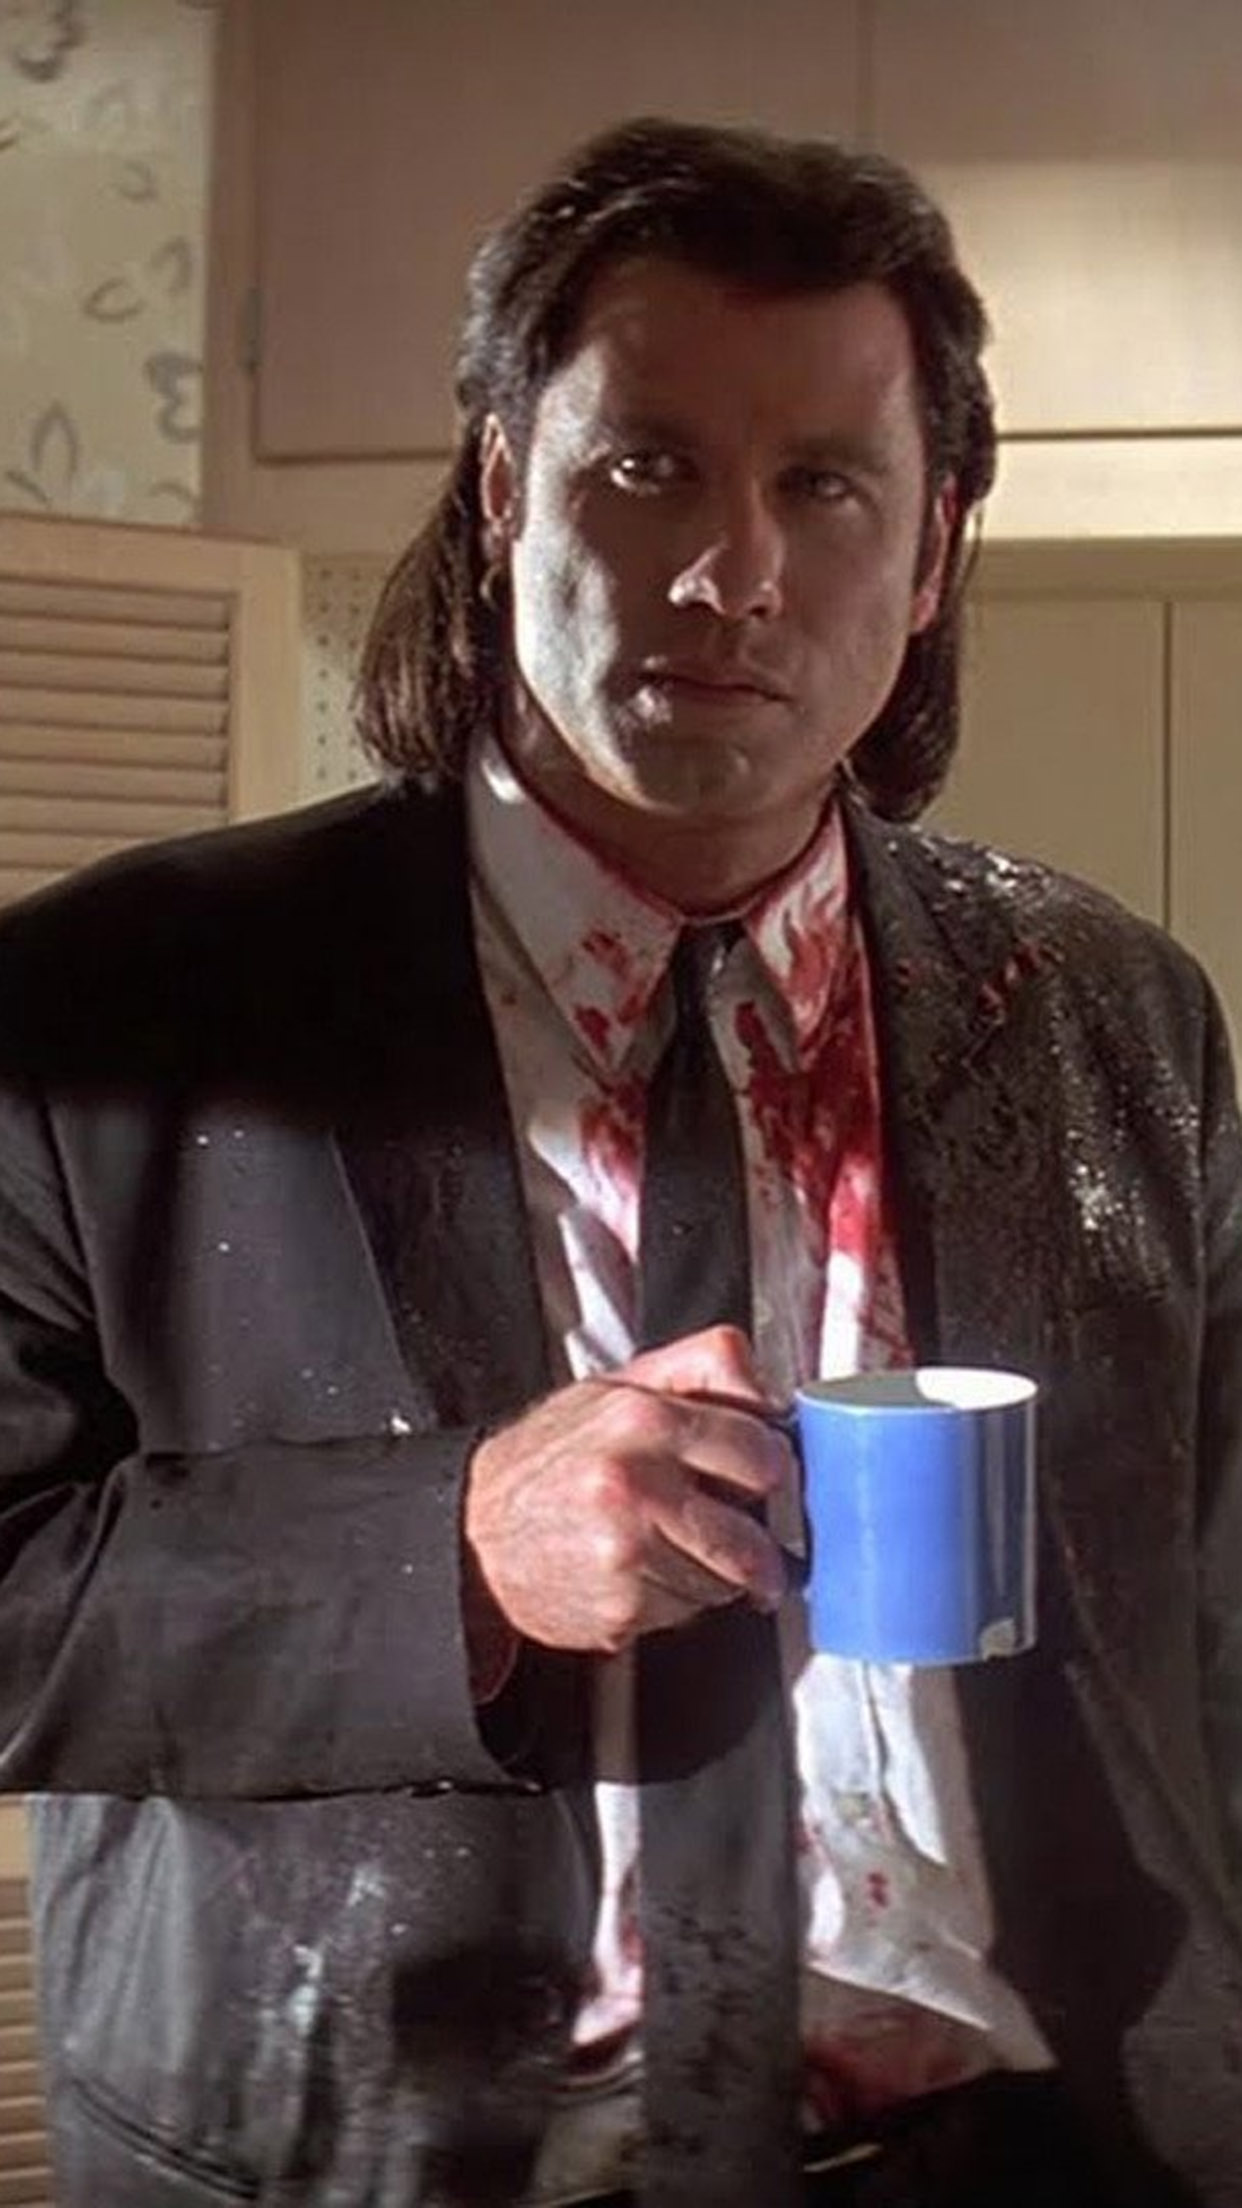 Free Wallpaper For Iphone 7 Plus Pulp Fiction Vincent Vega Wallpaper For Iphone X 8 7 6